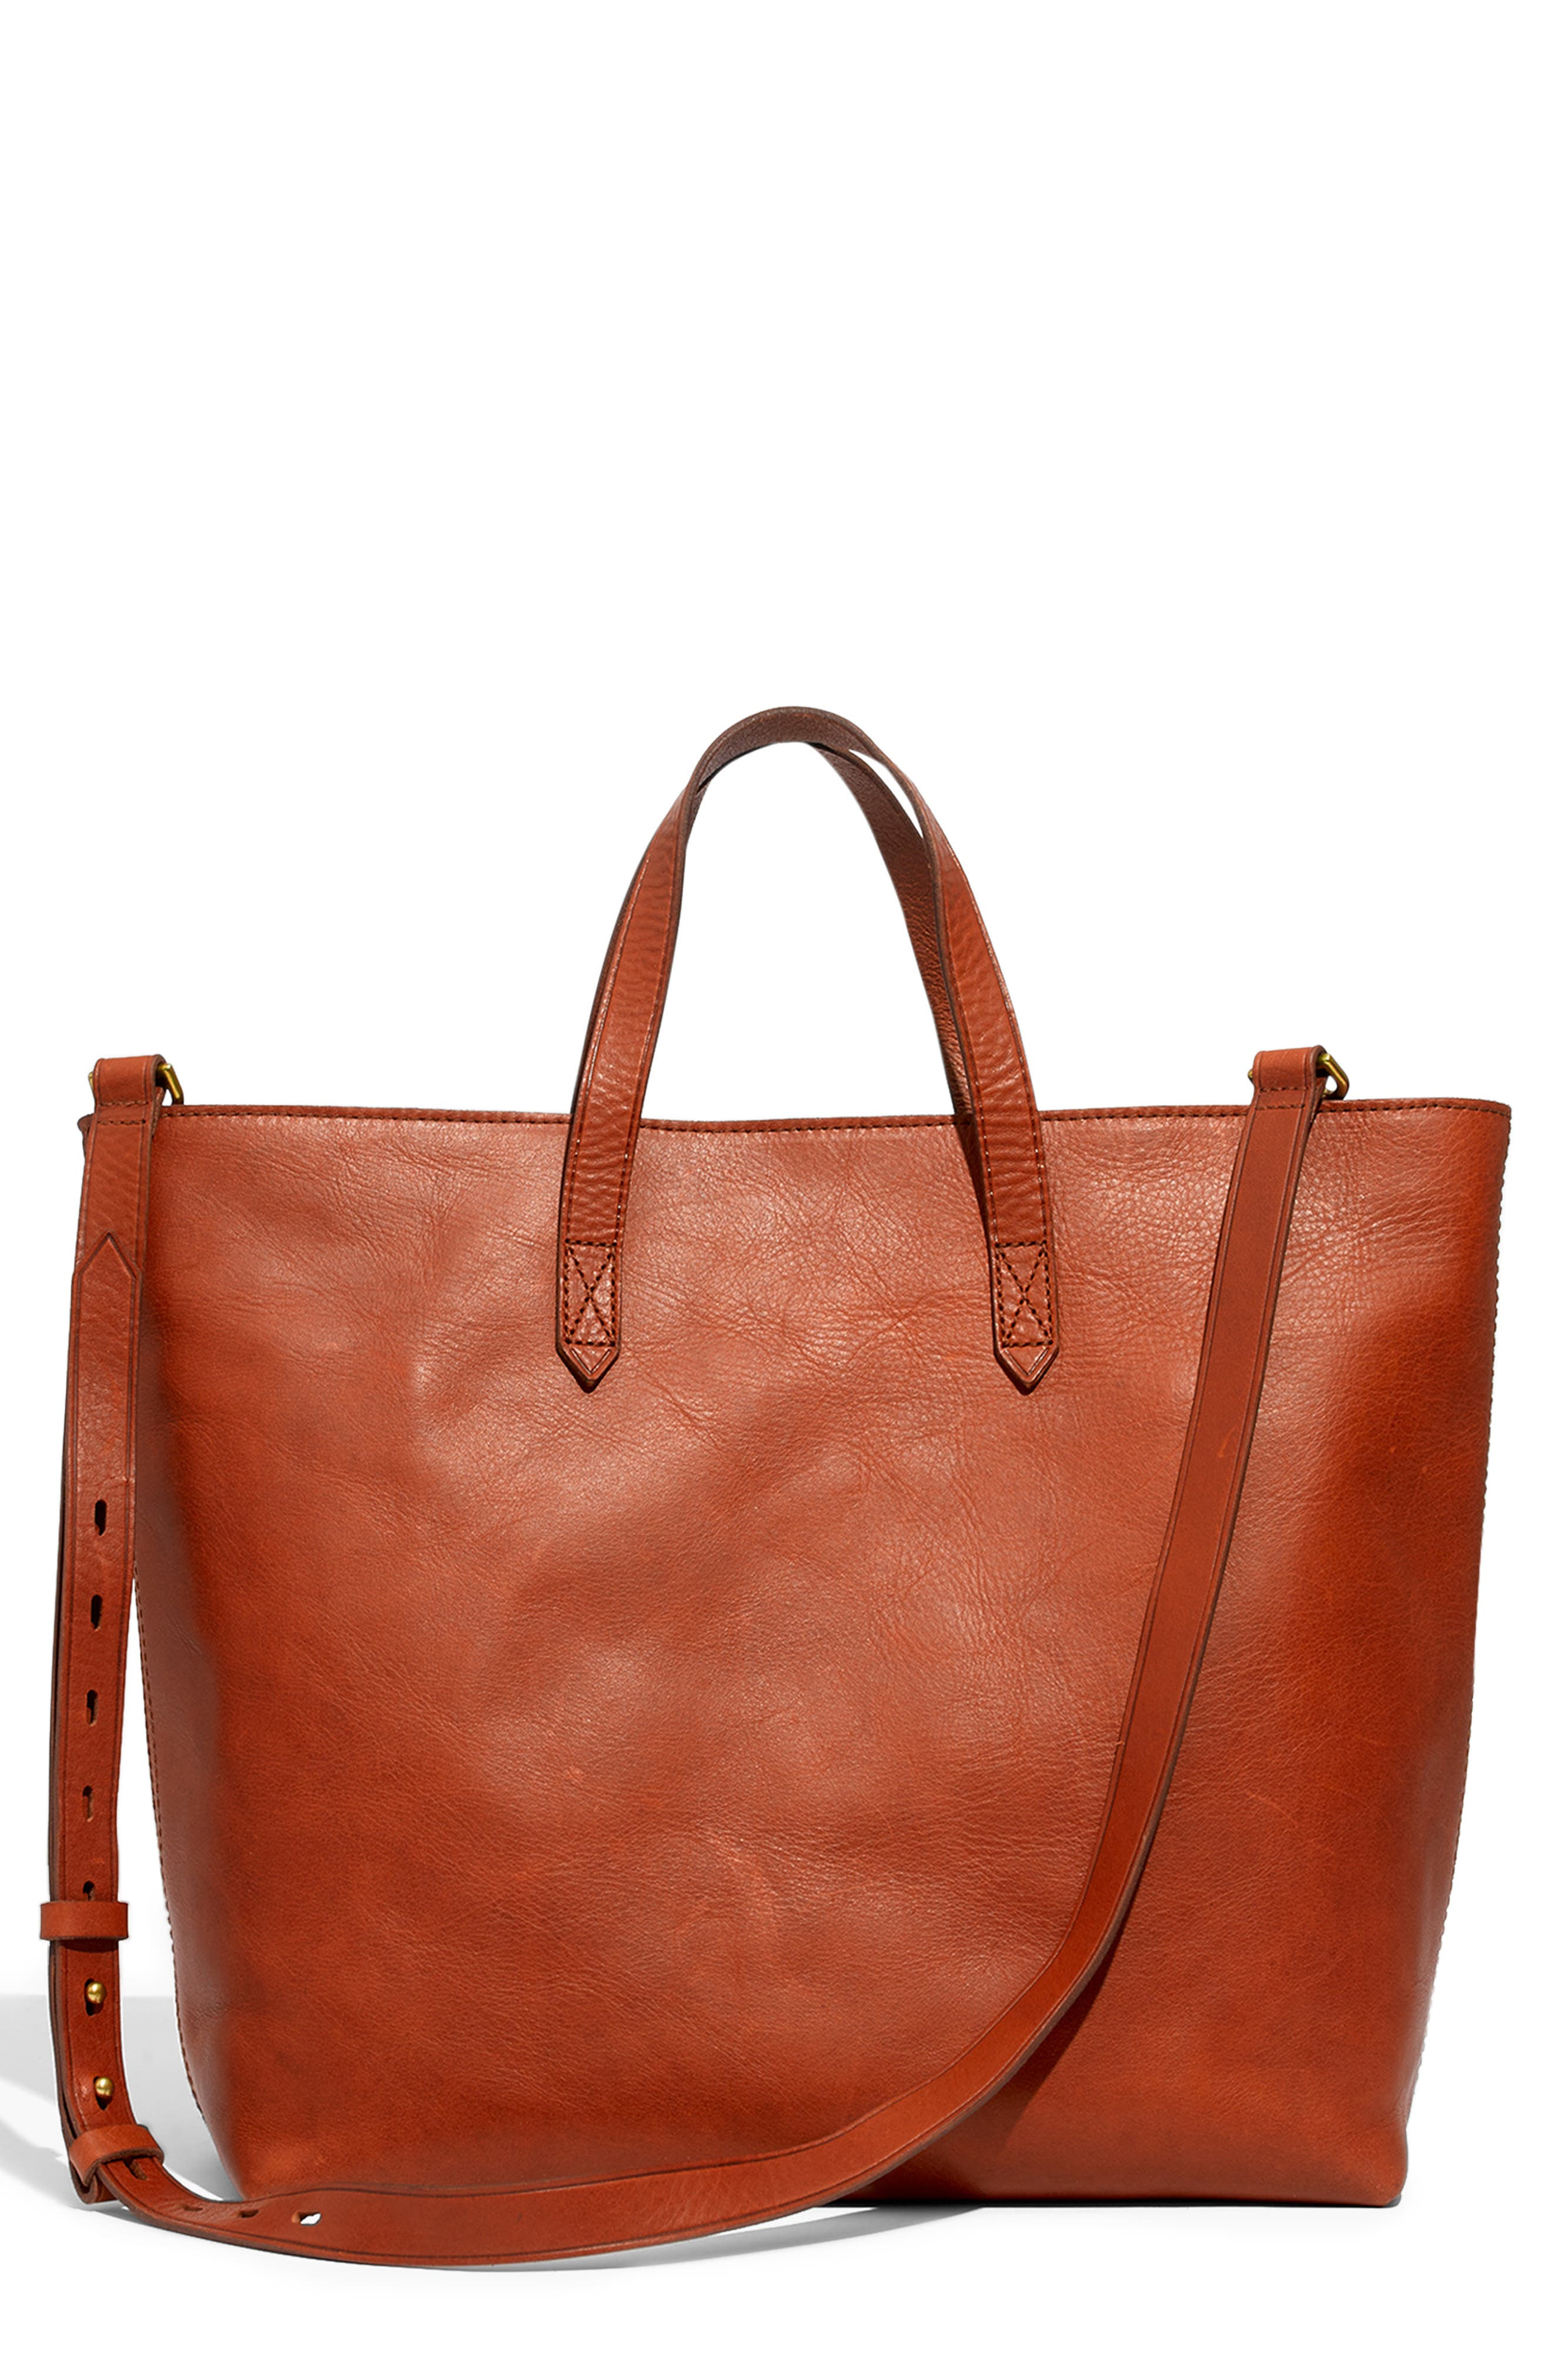 9a58942026d0 Leather genuine tote bags for women leather coated canvas jpg 480x730 Camel  leather handbags